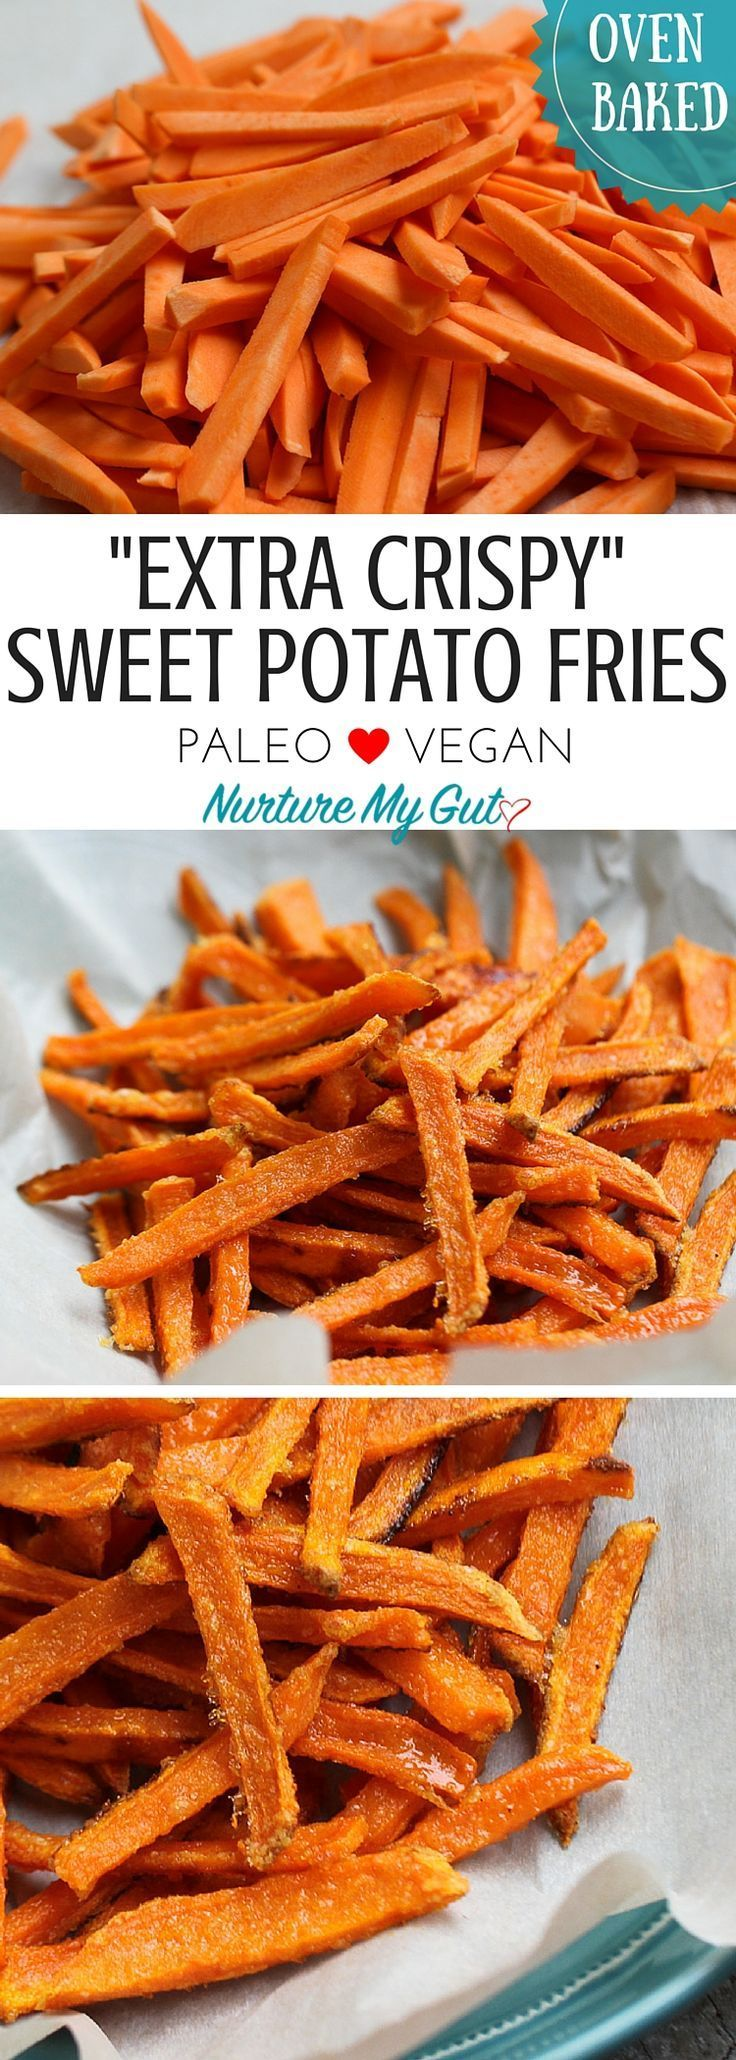 Extra Crispy Baked Sweet Potato Fries. These fast